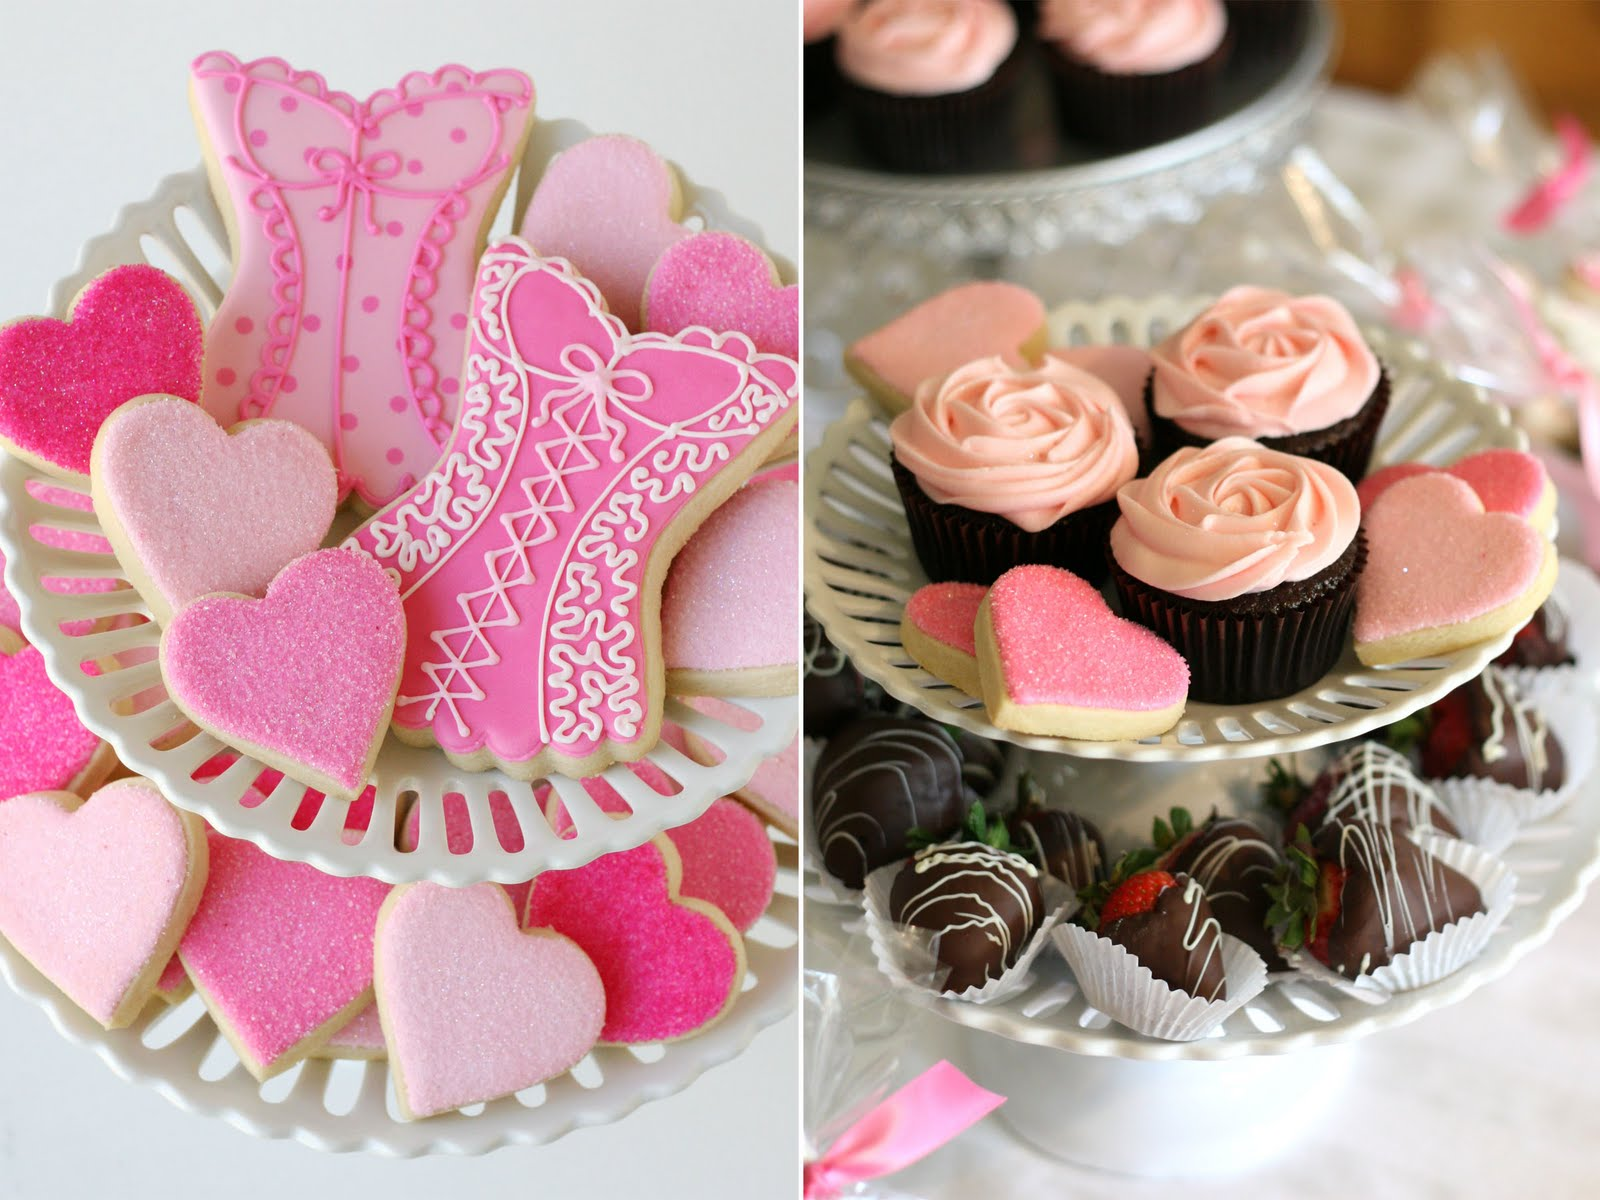 Linens and Lingerie {Wedding Shower} – Glorious Treats